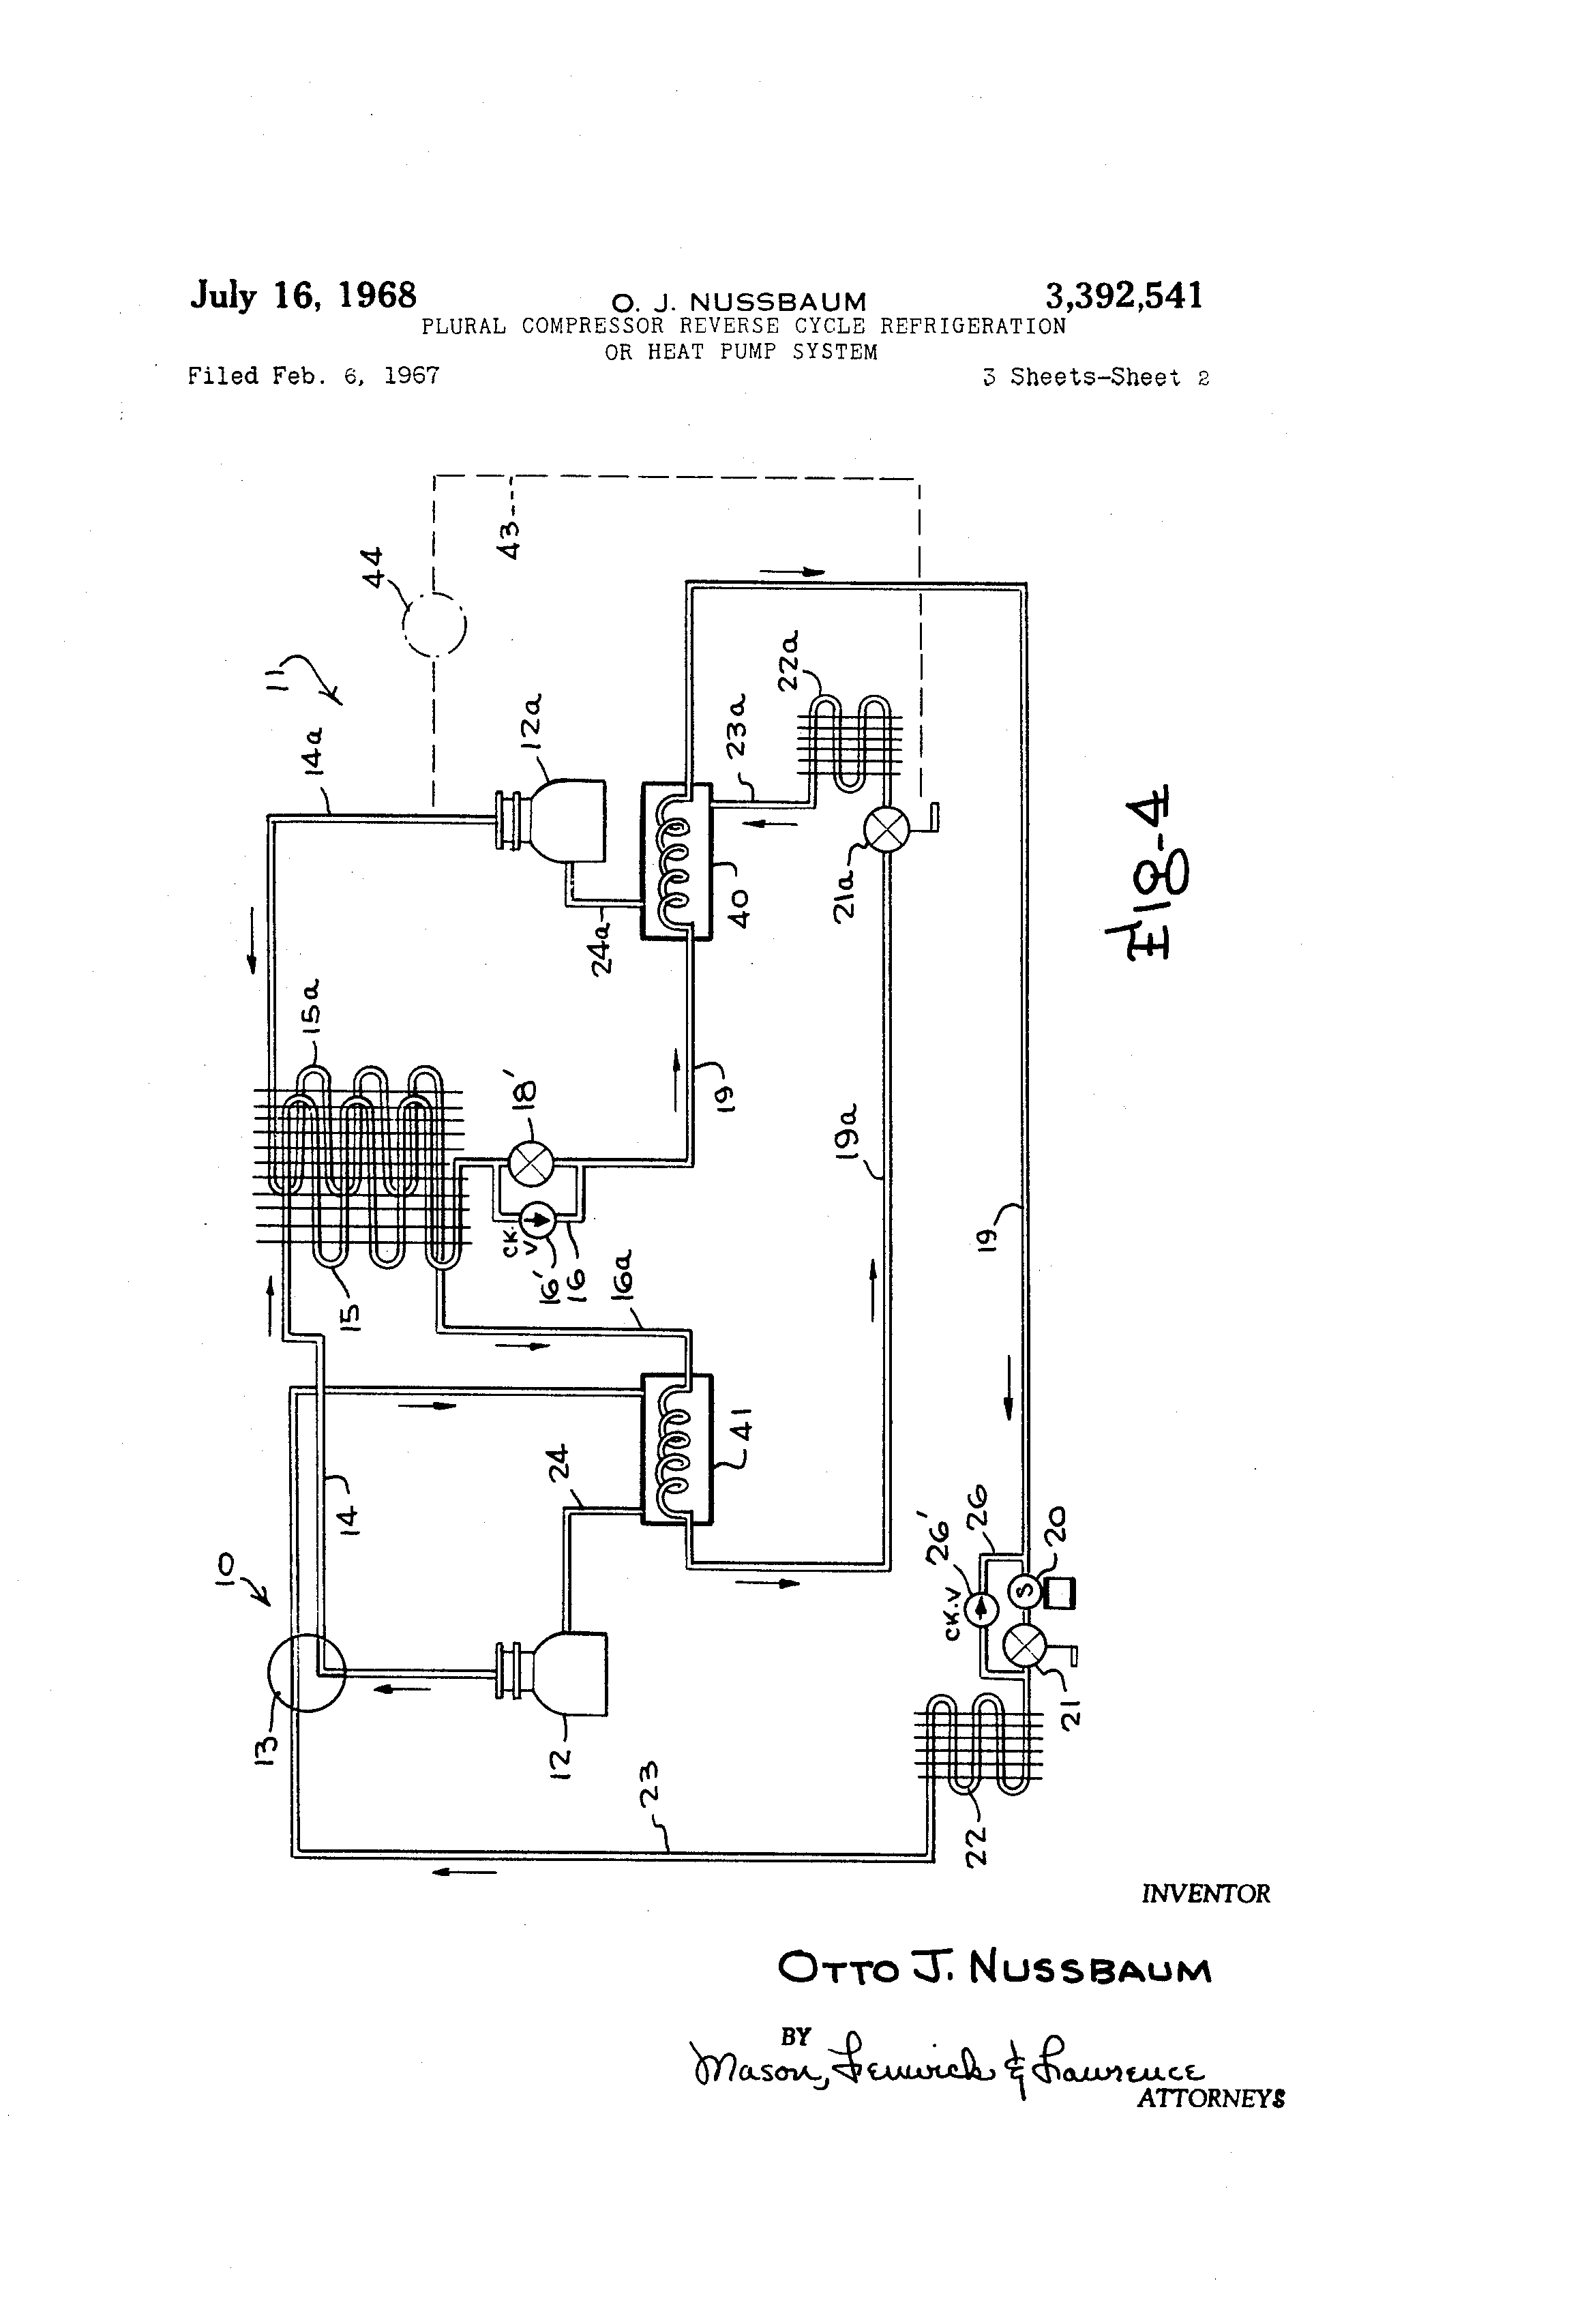 patent us3392541 - plural compressor reverse cycle refrigeration or heat pump system